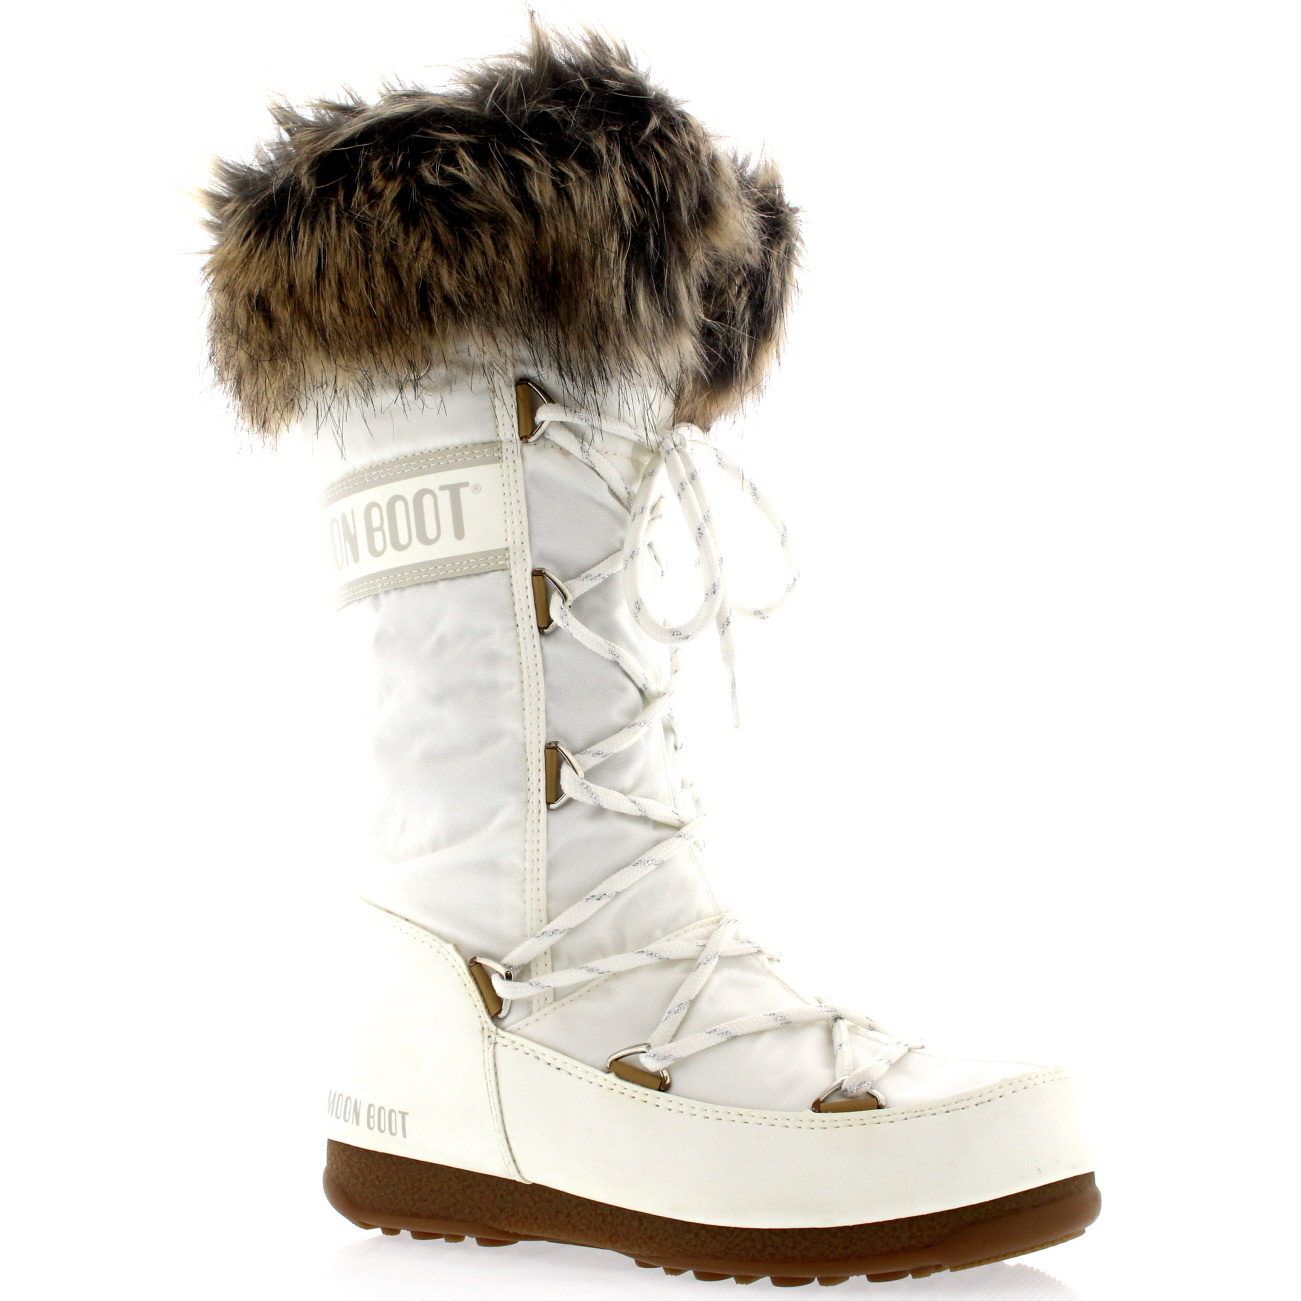 The Original Moon Boot Monaco Felt